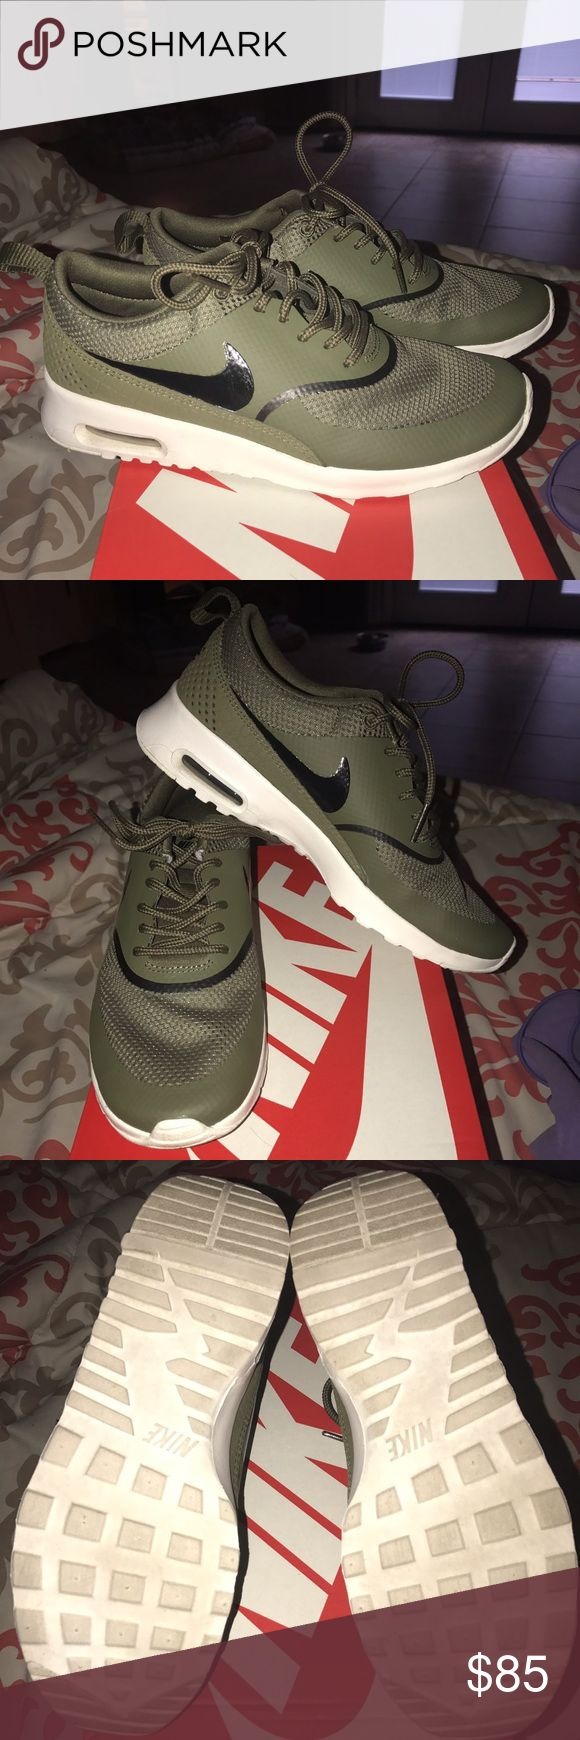 Nike Thea air max shoes Only 1 month old. Like brand new condition. I've only worn these 2 times, they are a little big on me that's why I'm selling these. Beautiful olive green color. Box is available to ship just let me know if you would like the box included. I'm a fast shipper too!! Nike Shoes Athletic Shoes